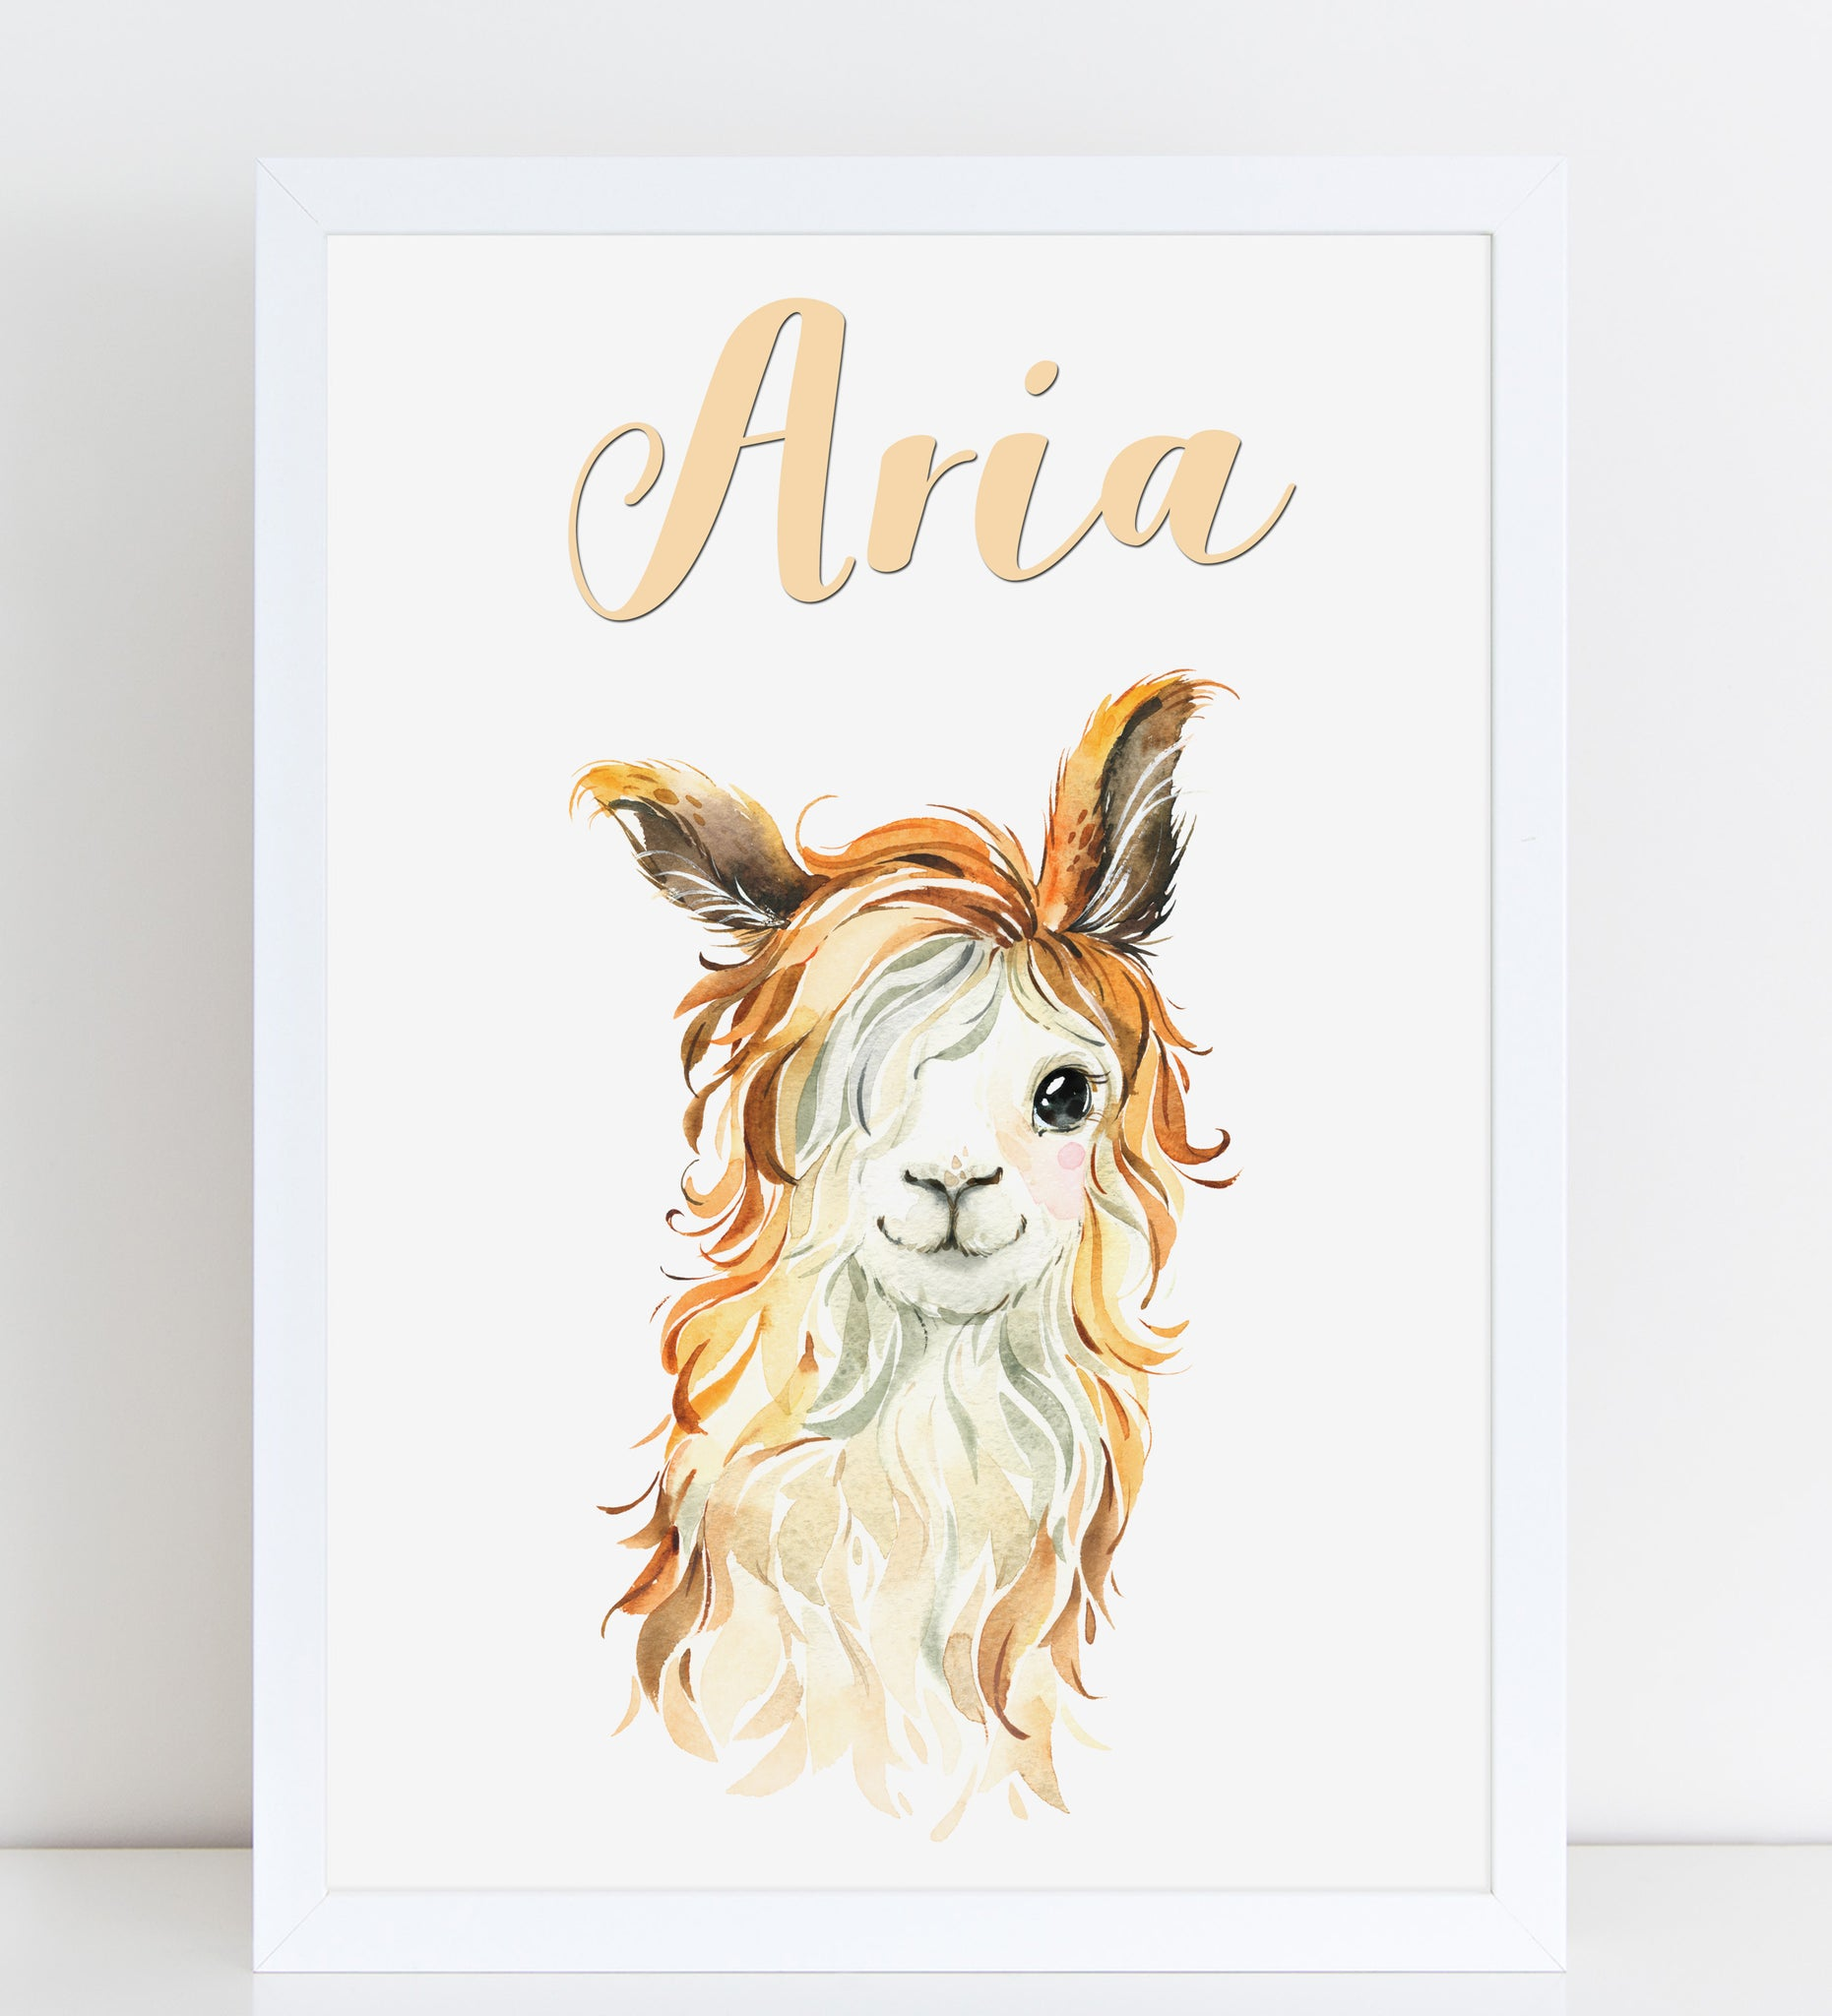 Baby Long Haired Llama Print, Cute Personalised Animal Print for Kids, A4 or A3